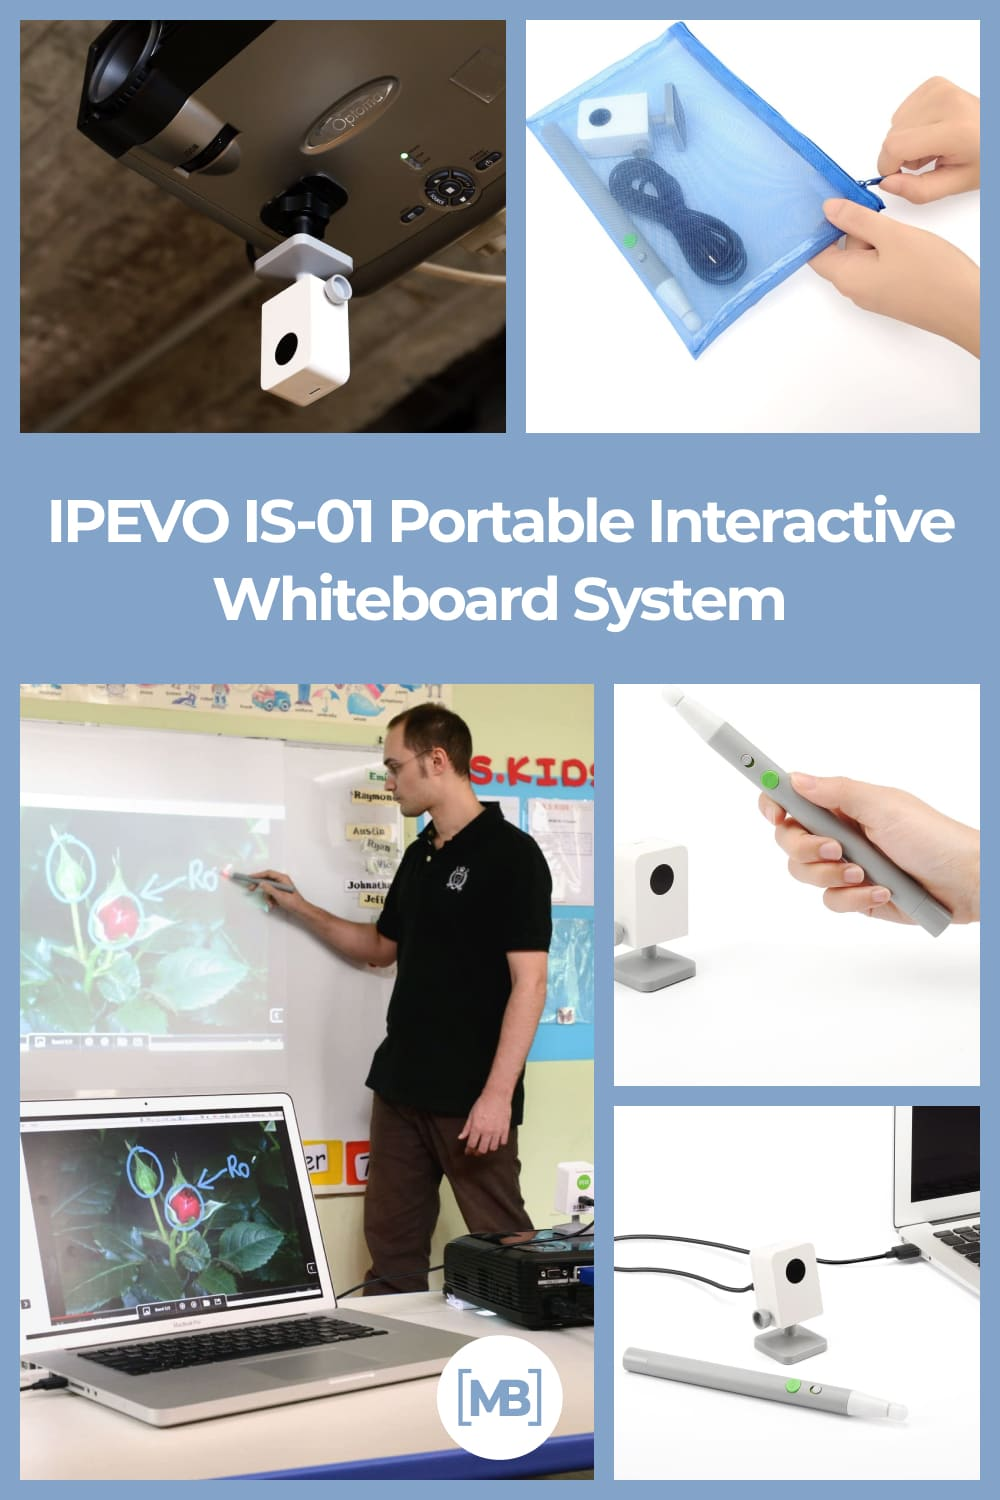 Turn your existing whiteboard or projector surface into an interactive whiteboard.